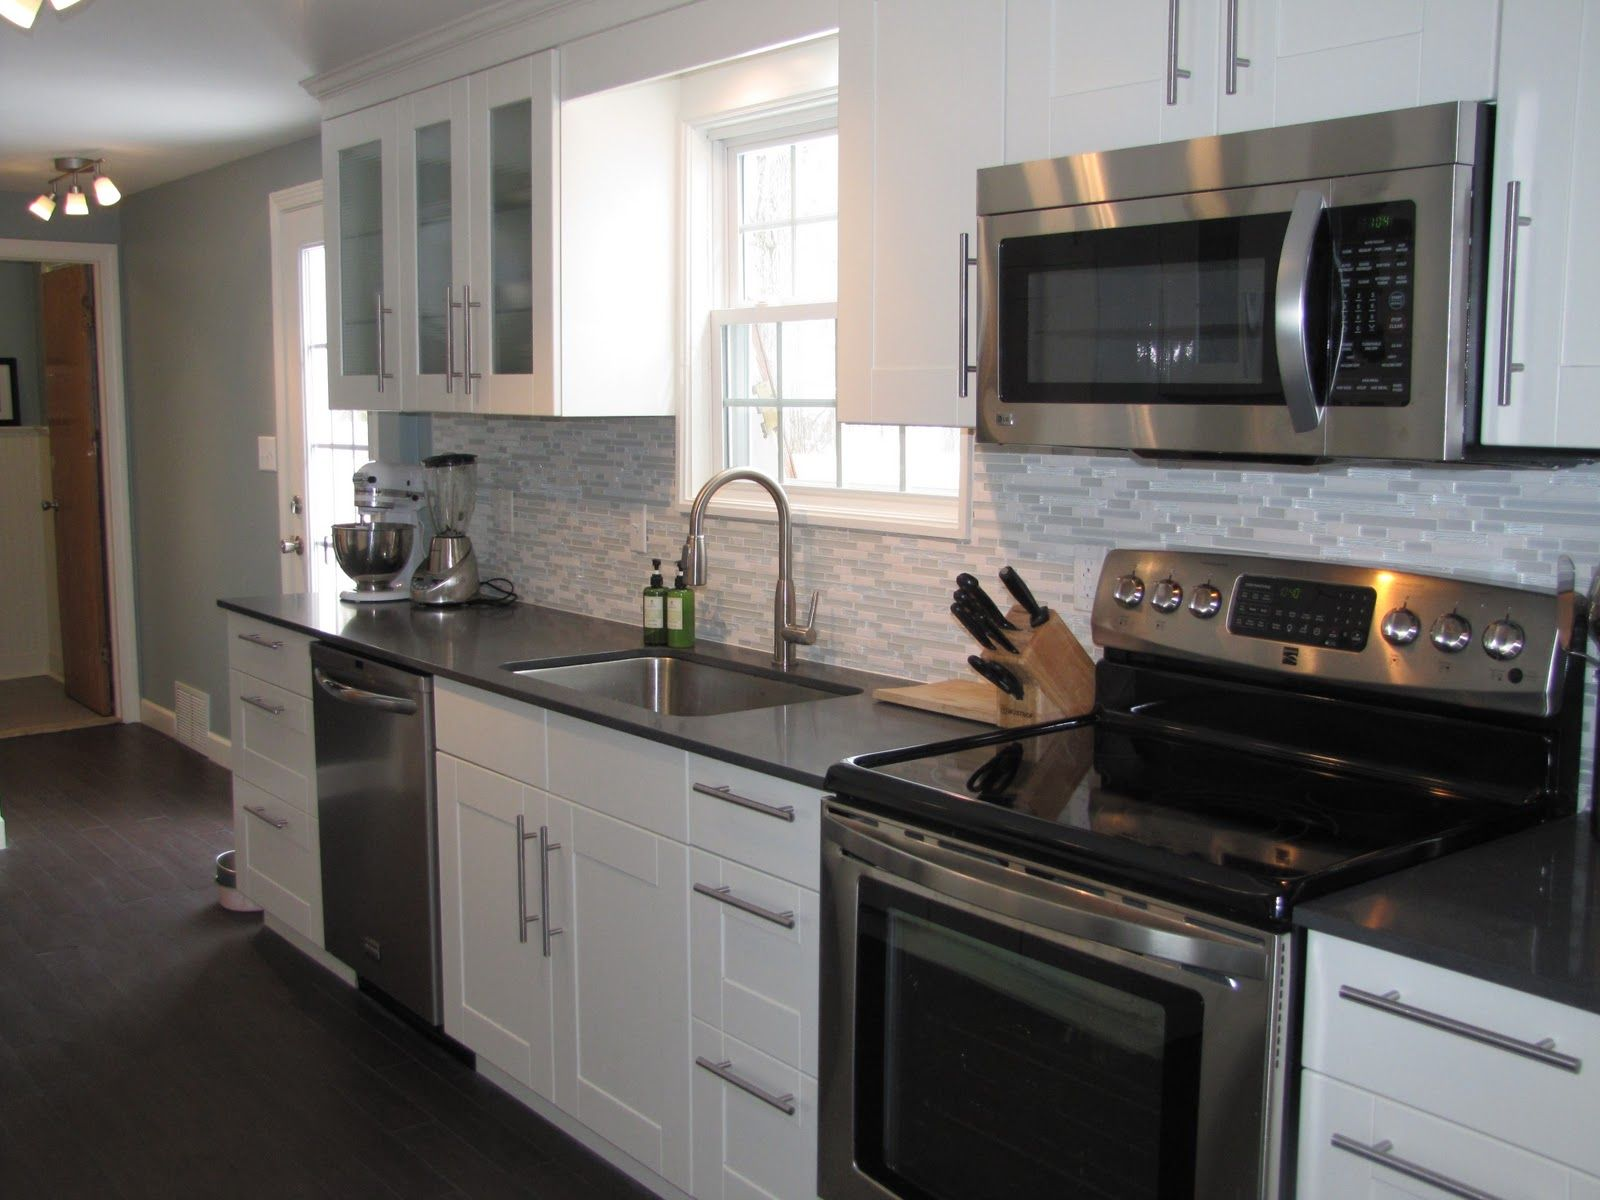 White Cupboards Stainless Steel Liance Liances And Ikea Adel Cabinets